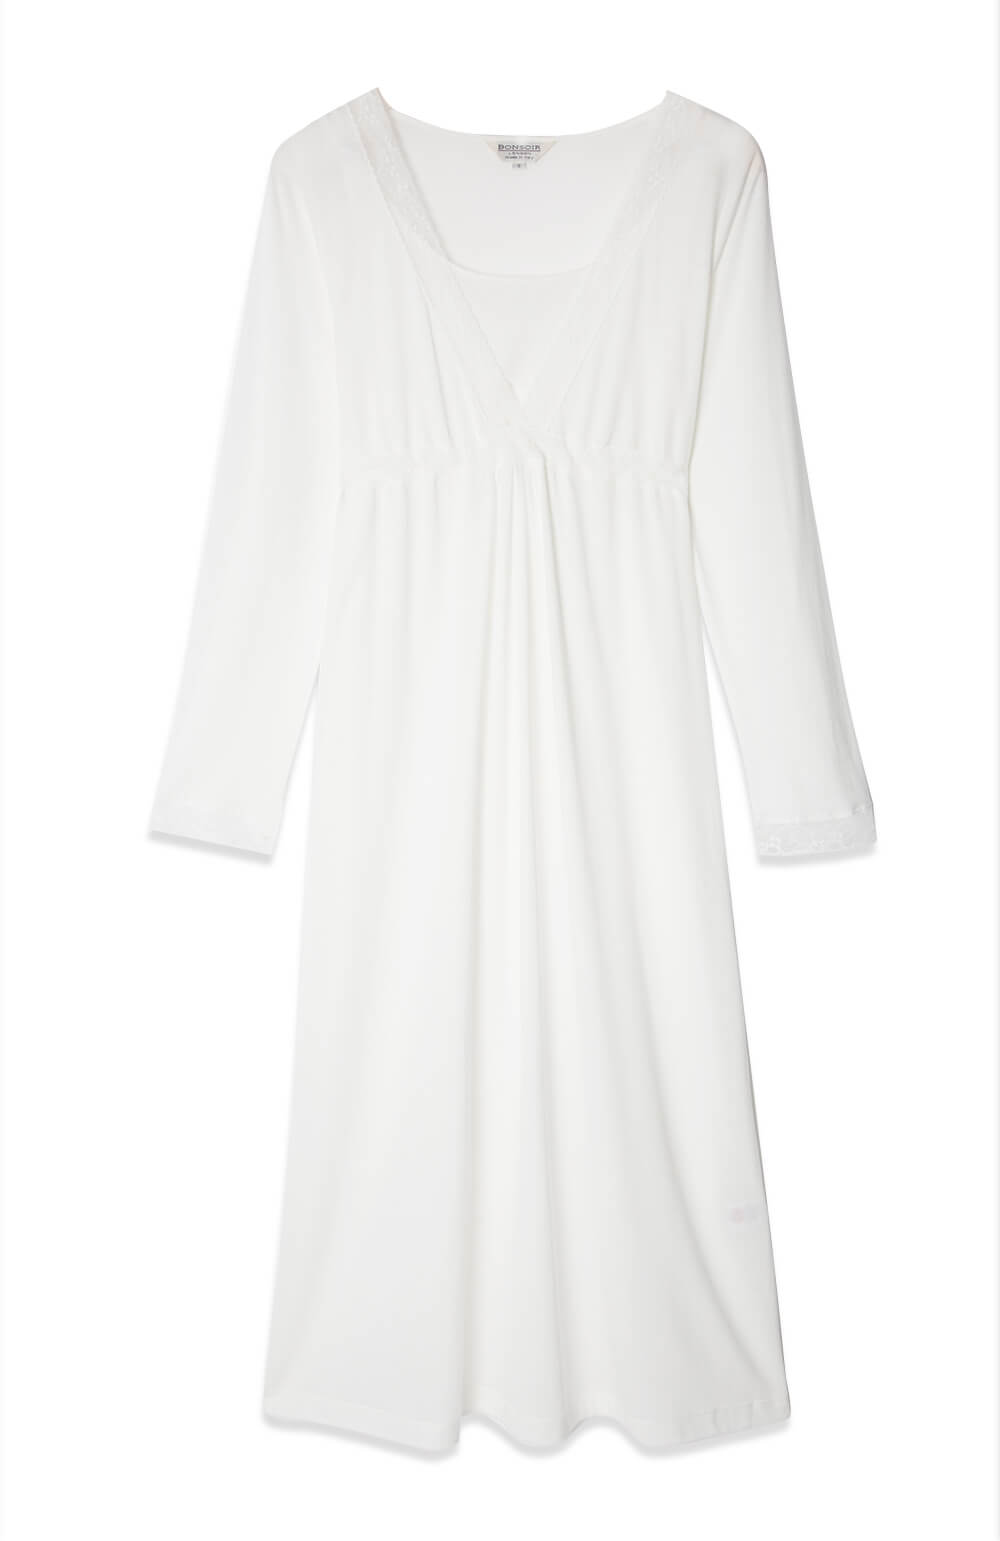 white jersey nursing nightgown maternity nightdress nightie